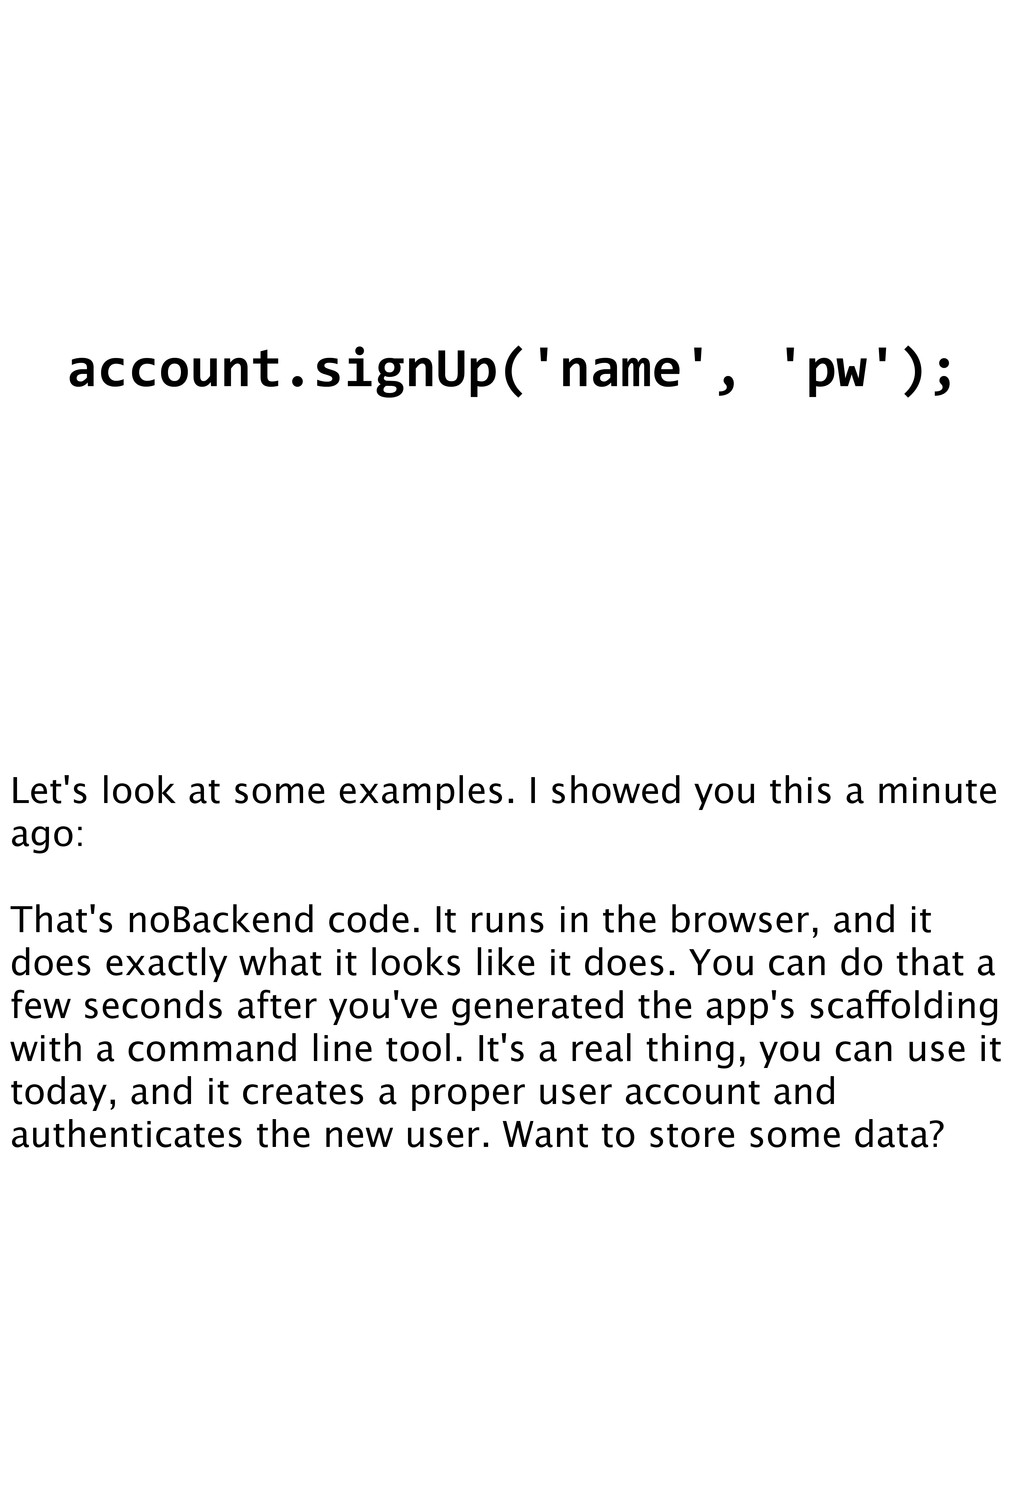 account.signUp('name', 'pw'); Let's look at ...